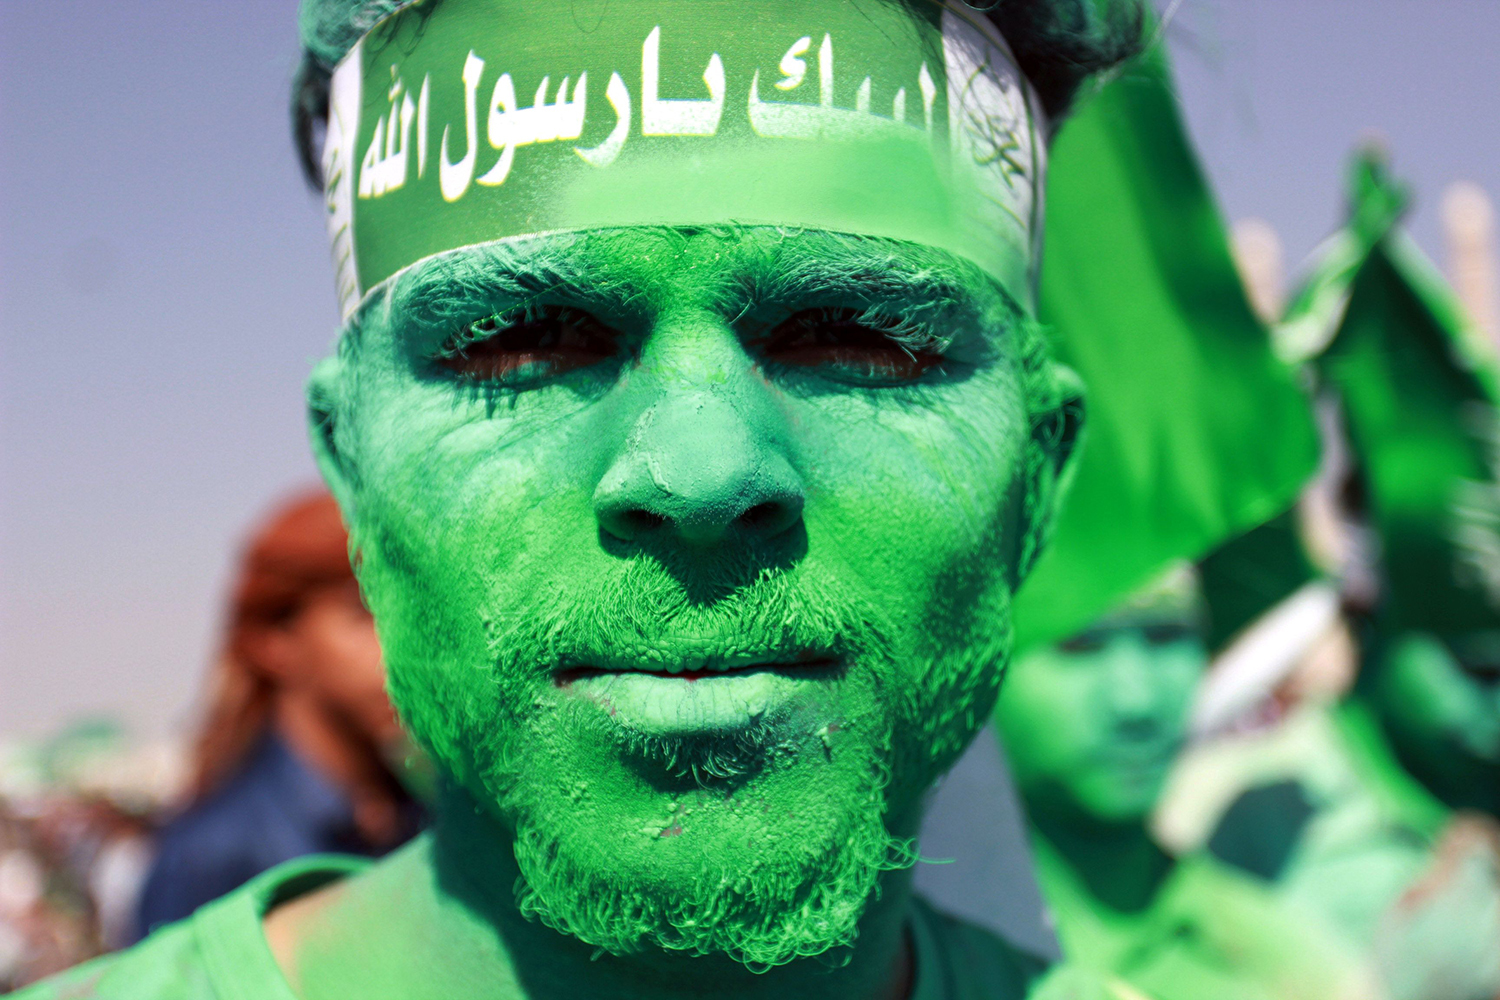 TOPSHOT - A Muslim Yemeni shows of his coloured face during a gathering marking the birth anniversary of Islam's Prophet Mohammed on December 11, 2016 in the Yemeni capital Sanaa. / AFP PHOTO / Abdel RAHMAN ABDALLAH / TT / kod 444